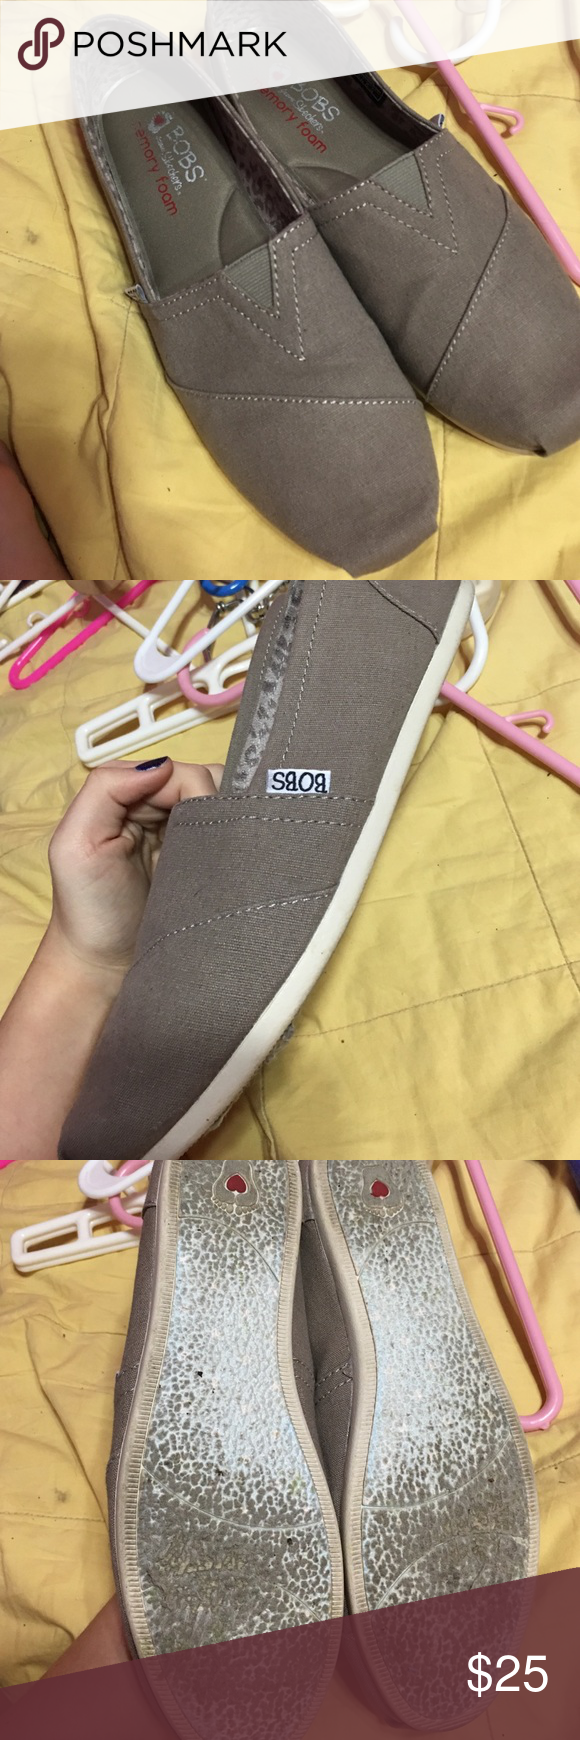 Memory Foam Taupe Bobs WORN ONCE, taupe color, dont fit me. Skechers Shoes Flats & Loafers